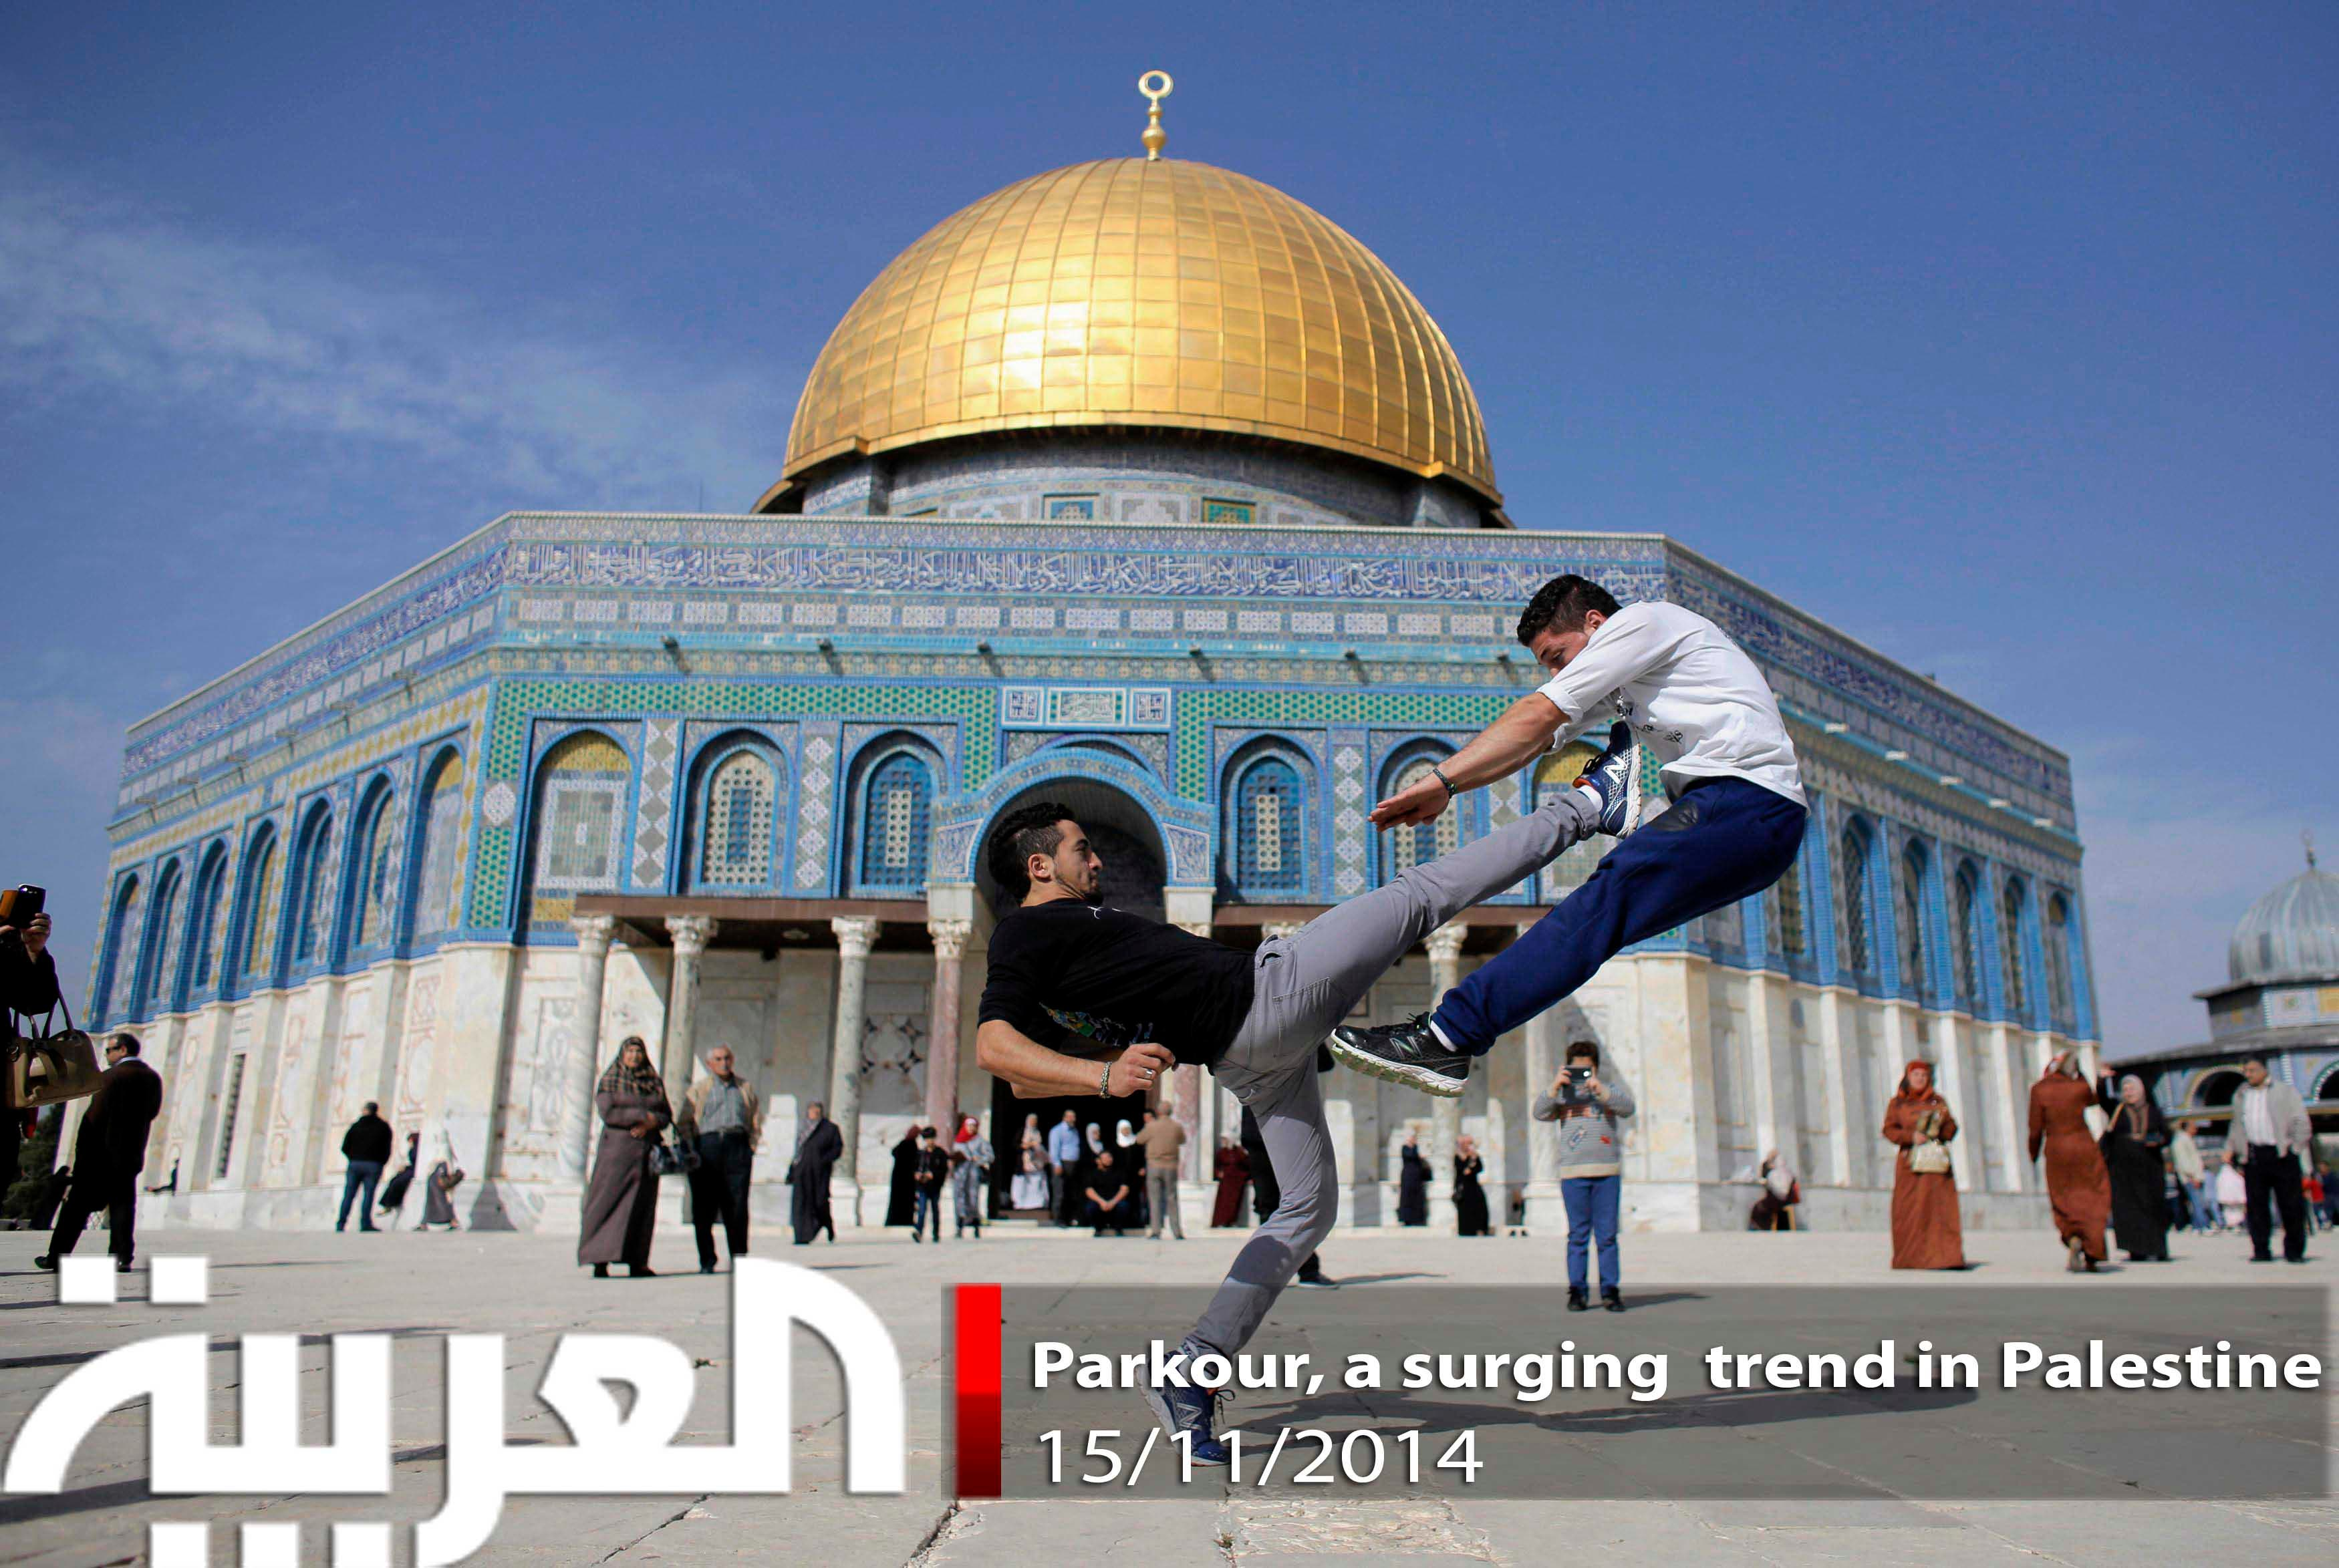 Parkour, a growing trend in Palestine